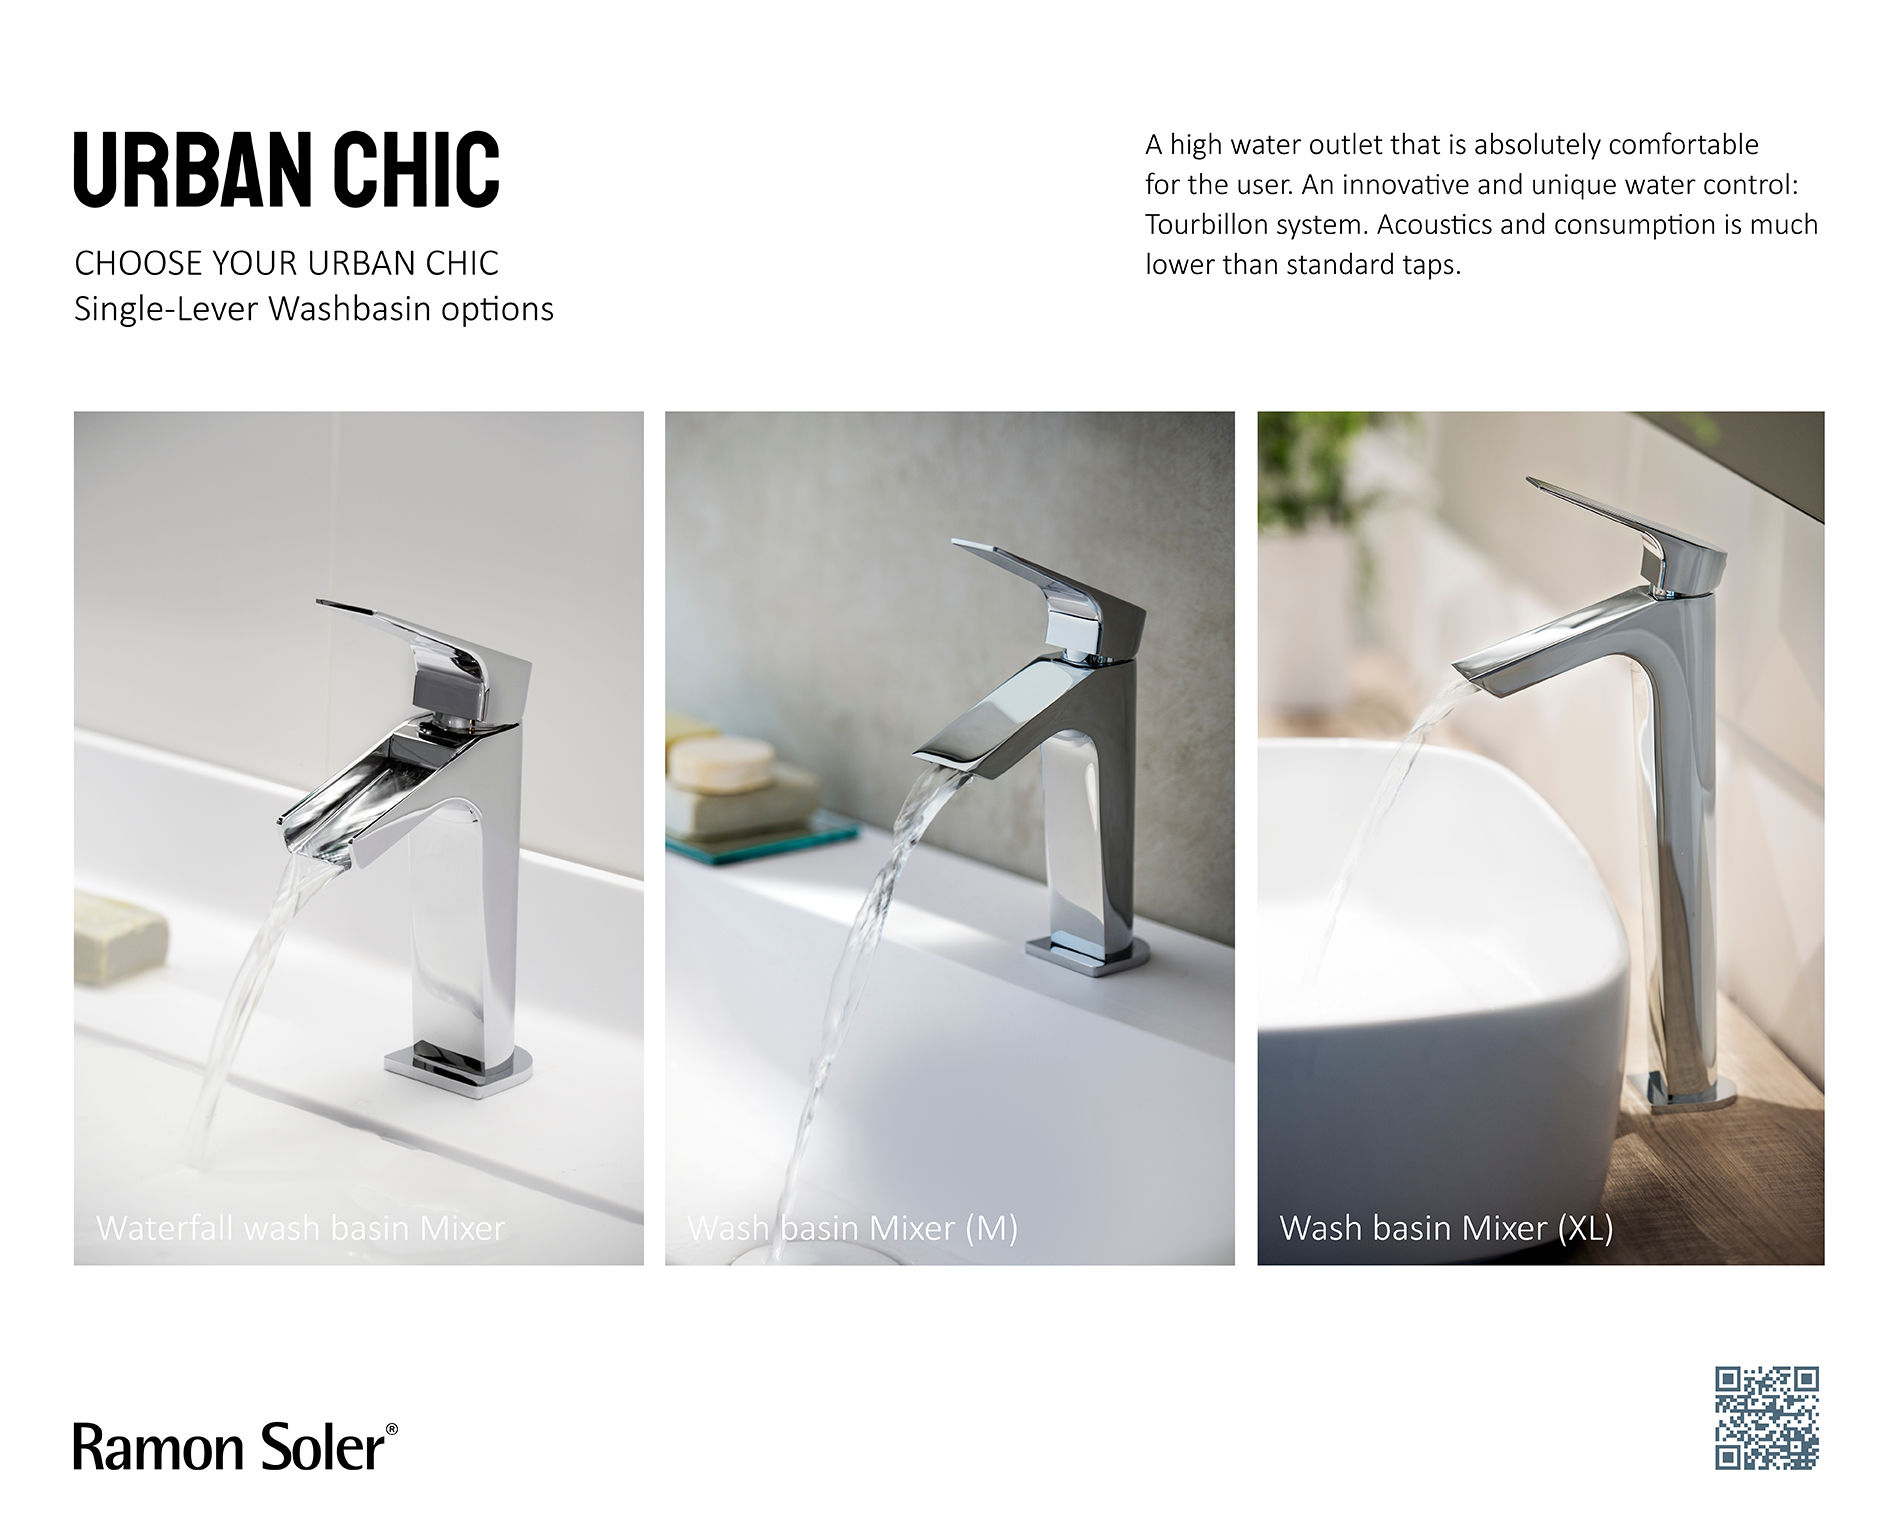 Urban Chic by Ramon Soler   iF WORLD DESIGN GUIDE